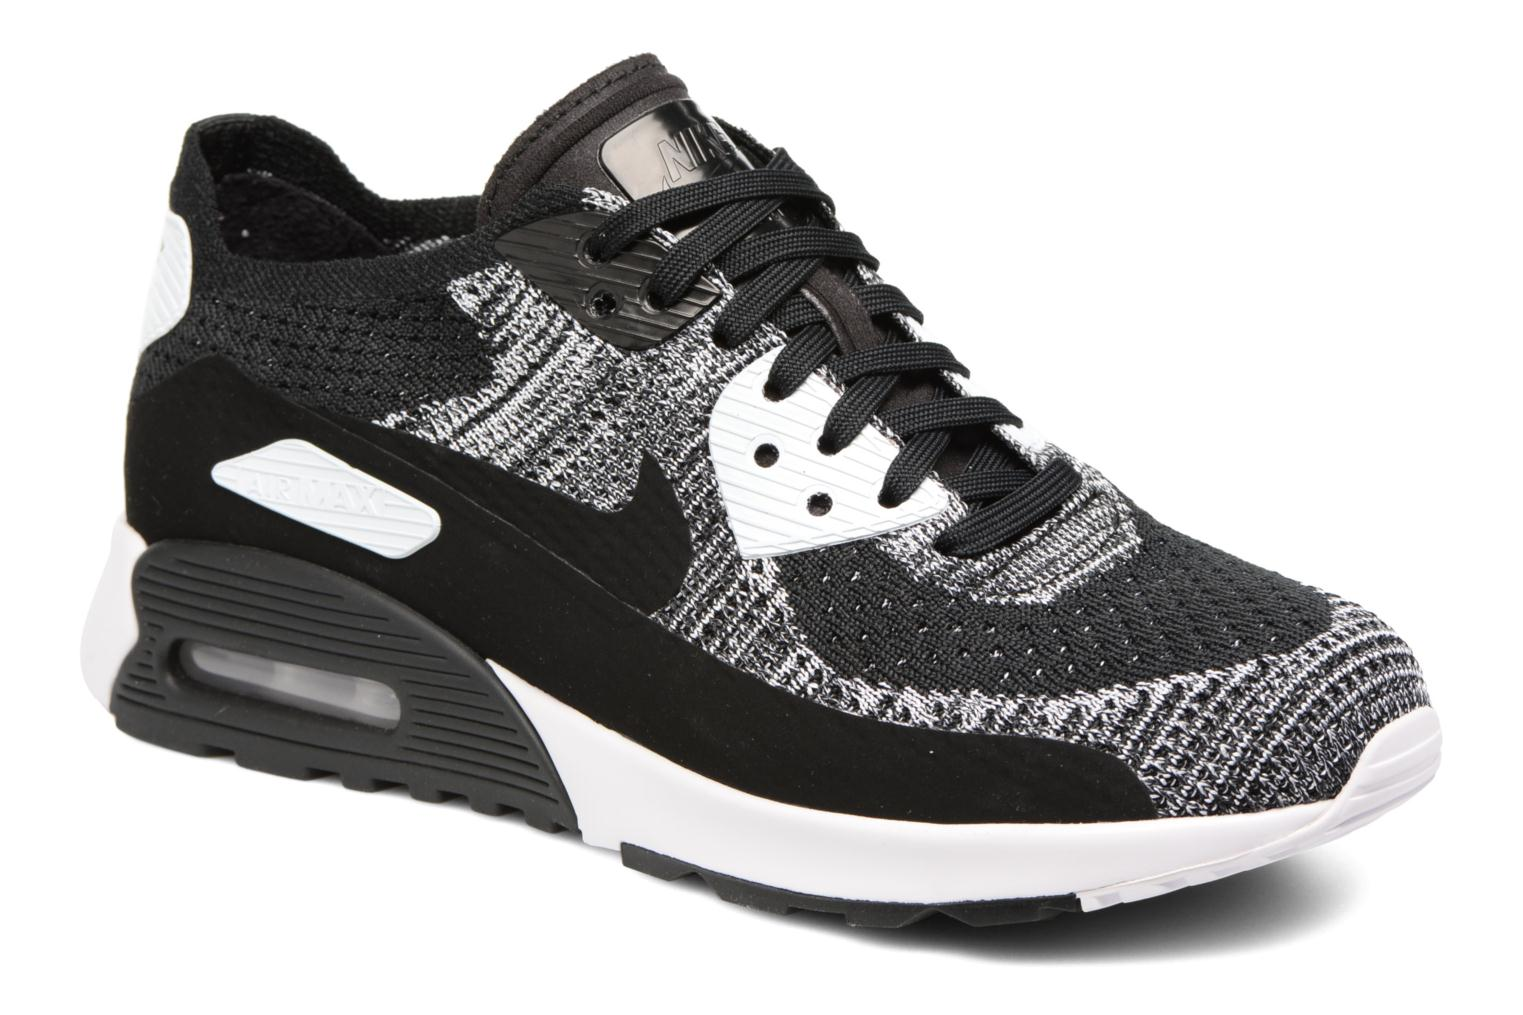 BLACK/BLACK-WHITE-ANTHRACITE Nike W Air Max 90 Ultra 2.0 Flyknit (Noir)